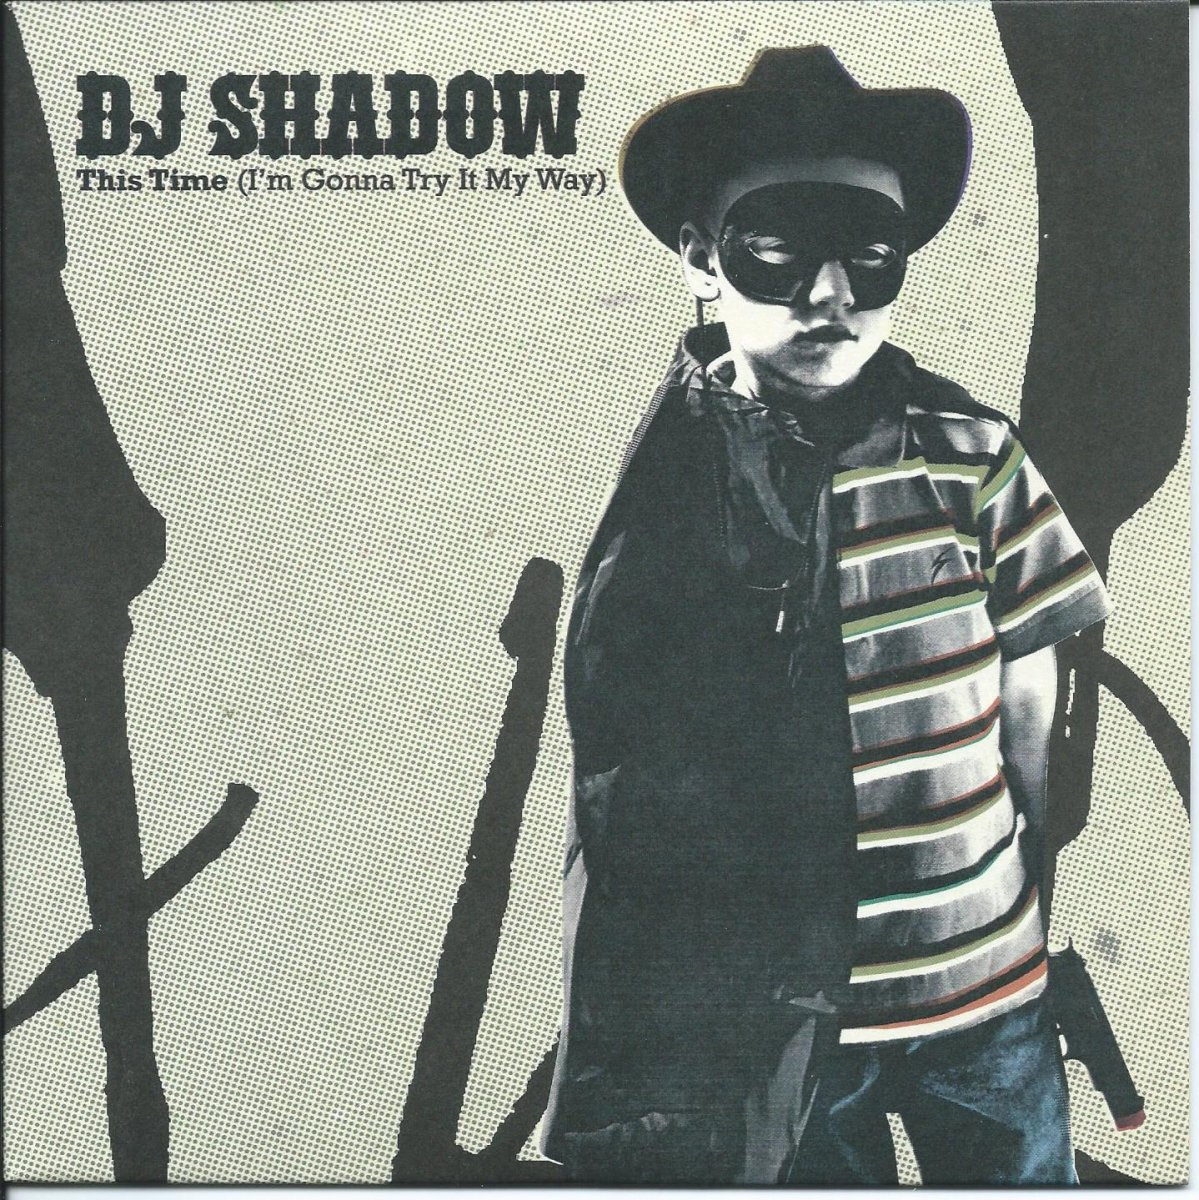 DJ SHADOW / THIS TIME (I'M GONNA TRY IT MY WAY) / THIS TIME (I'M GONNA DUB IT MY WAY) (7